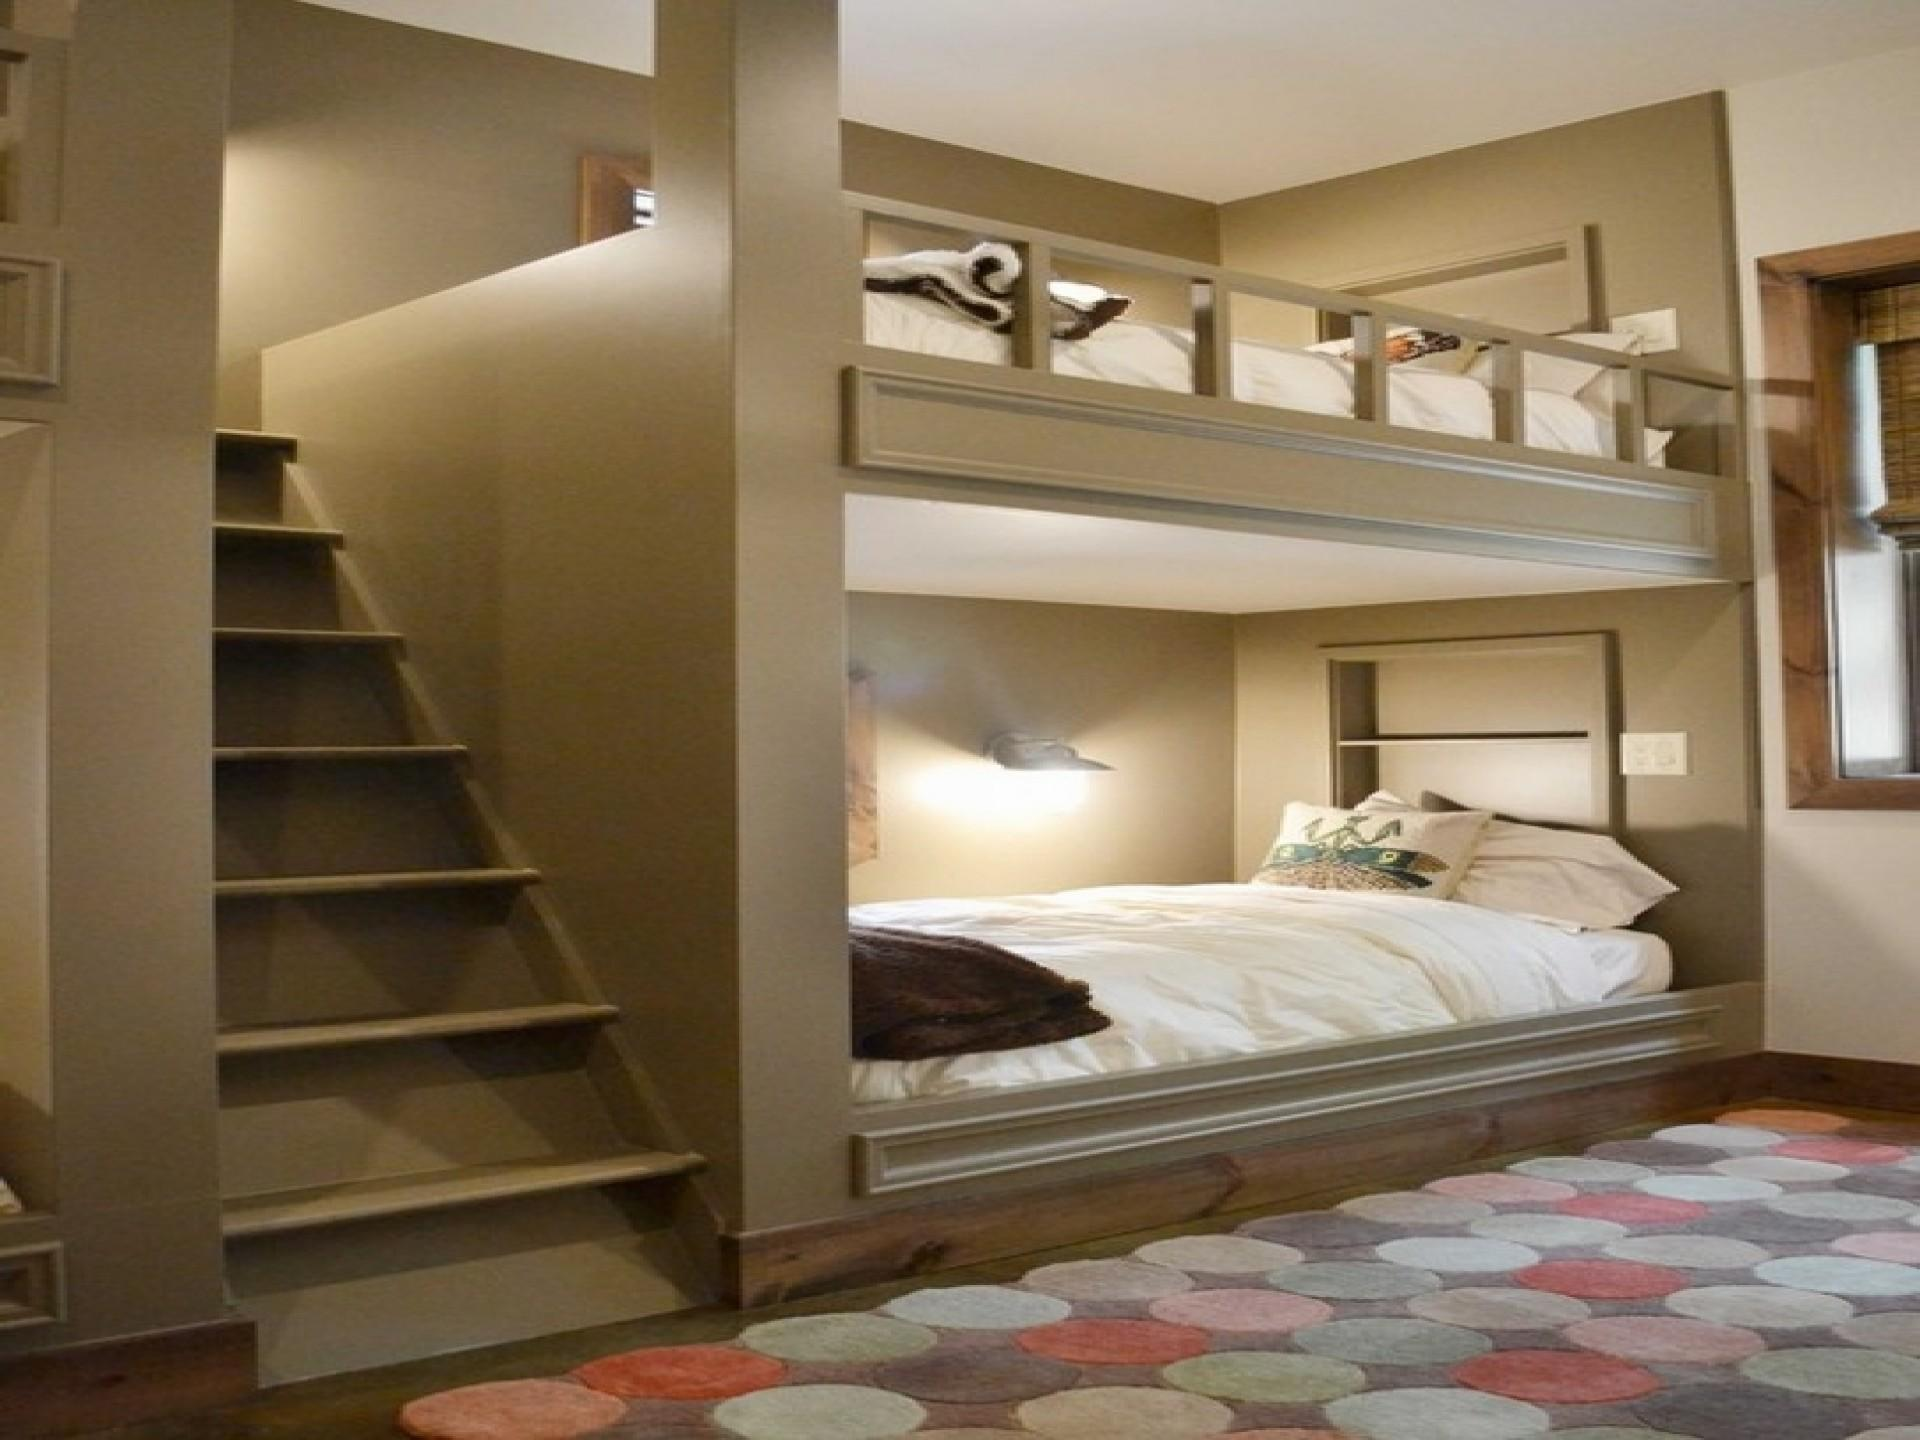 Bedroom Bunk Beds Stairs Desk Girls Window